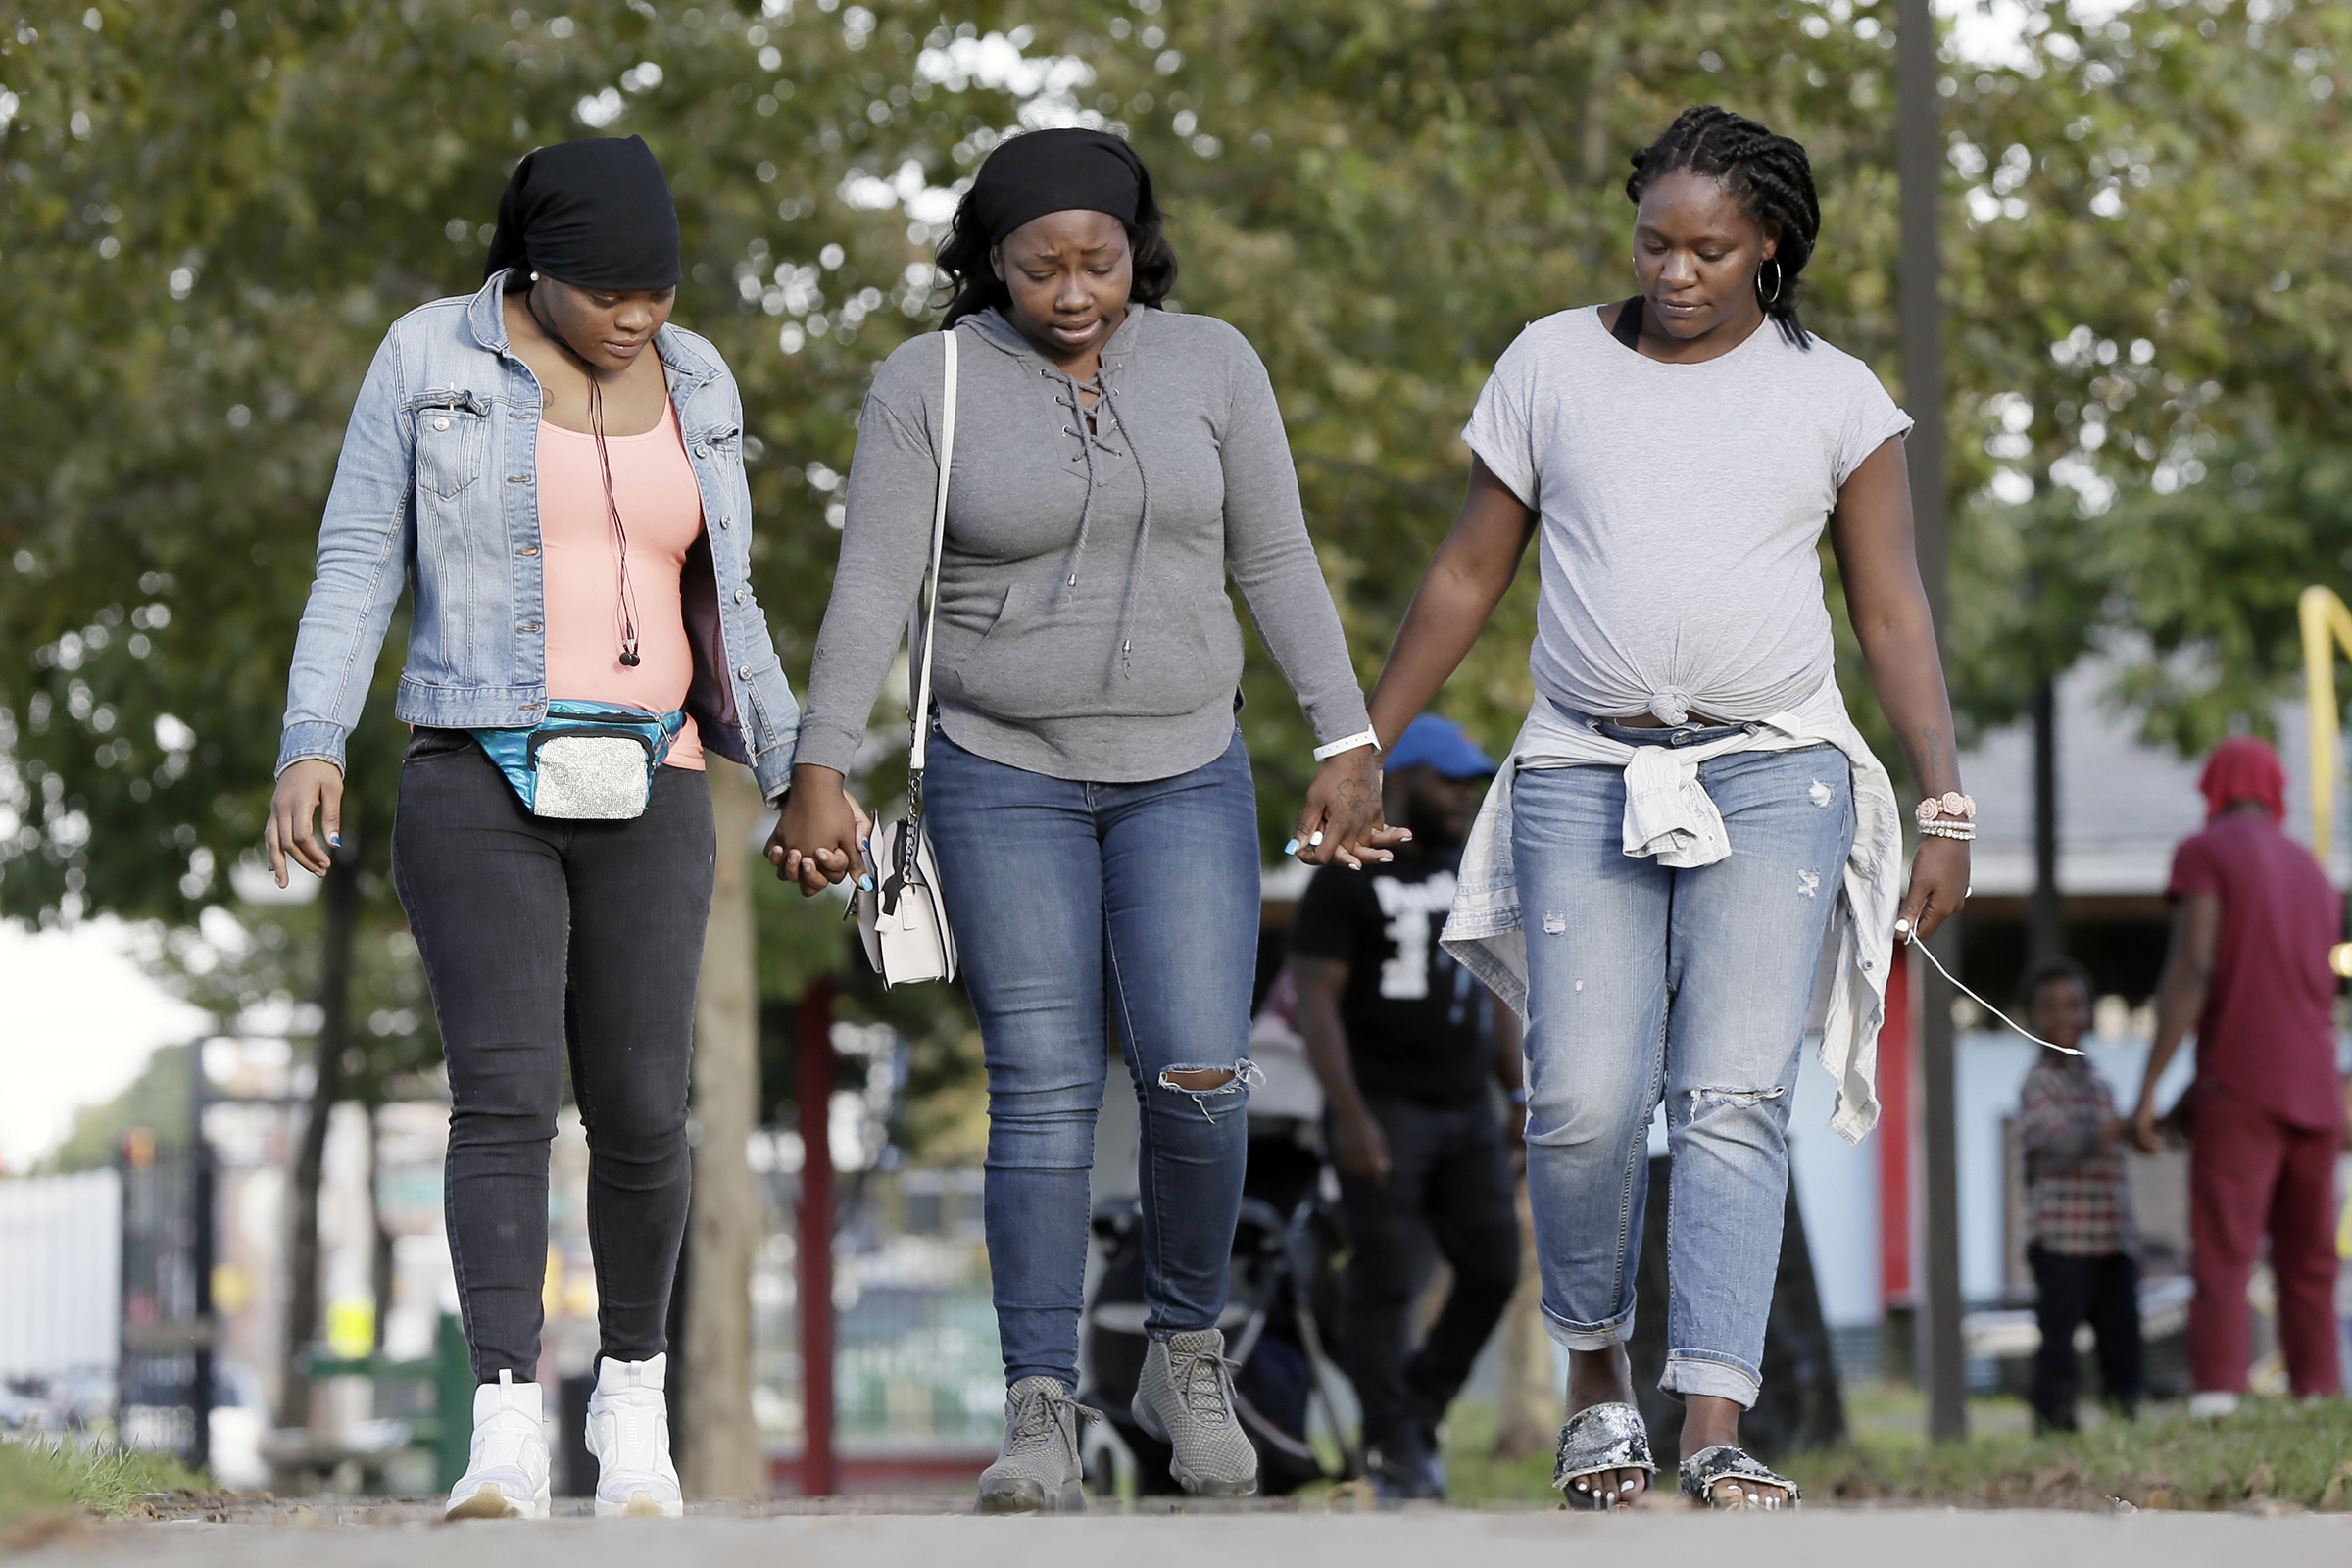 """(From left to right) Tye´Chelle Hall, Alize Grifin and Quadiyah Burton mourn the loss of their friend, Dawn """"Sissy"""" Boyd, as they walk in the Shepard Recreation Center in West Philly on Oct. 3, 2018. Boyd was killed in a drive-by shooting in West Philadelphia last week."""